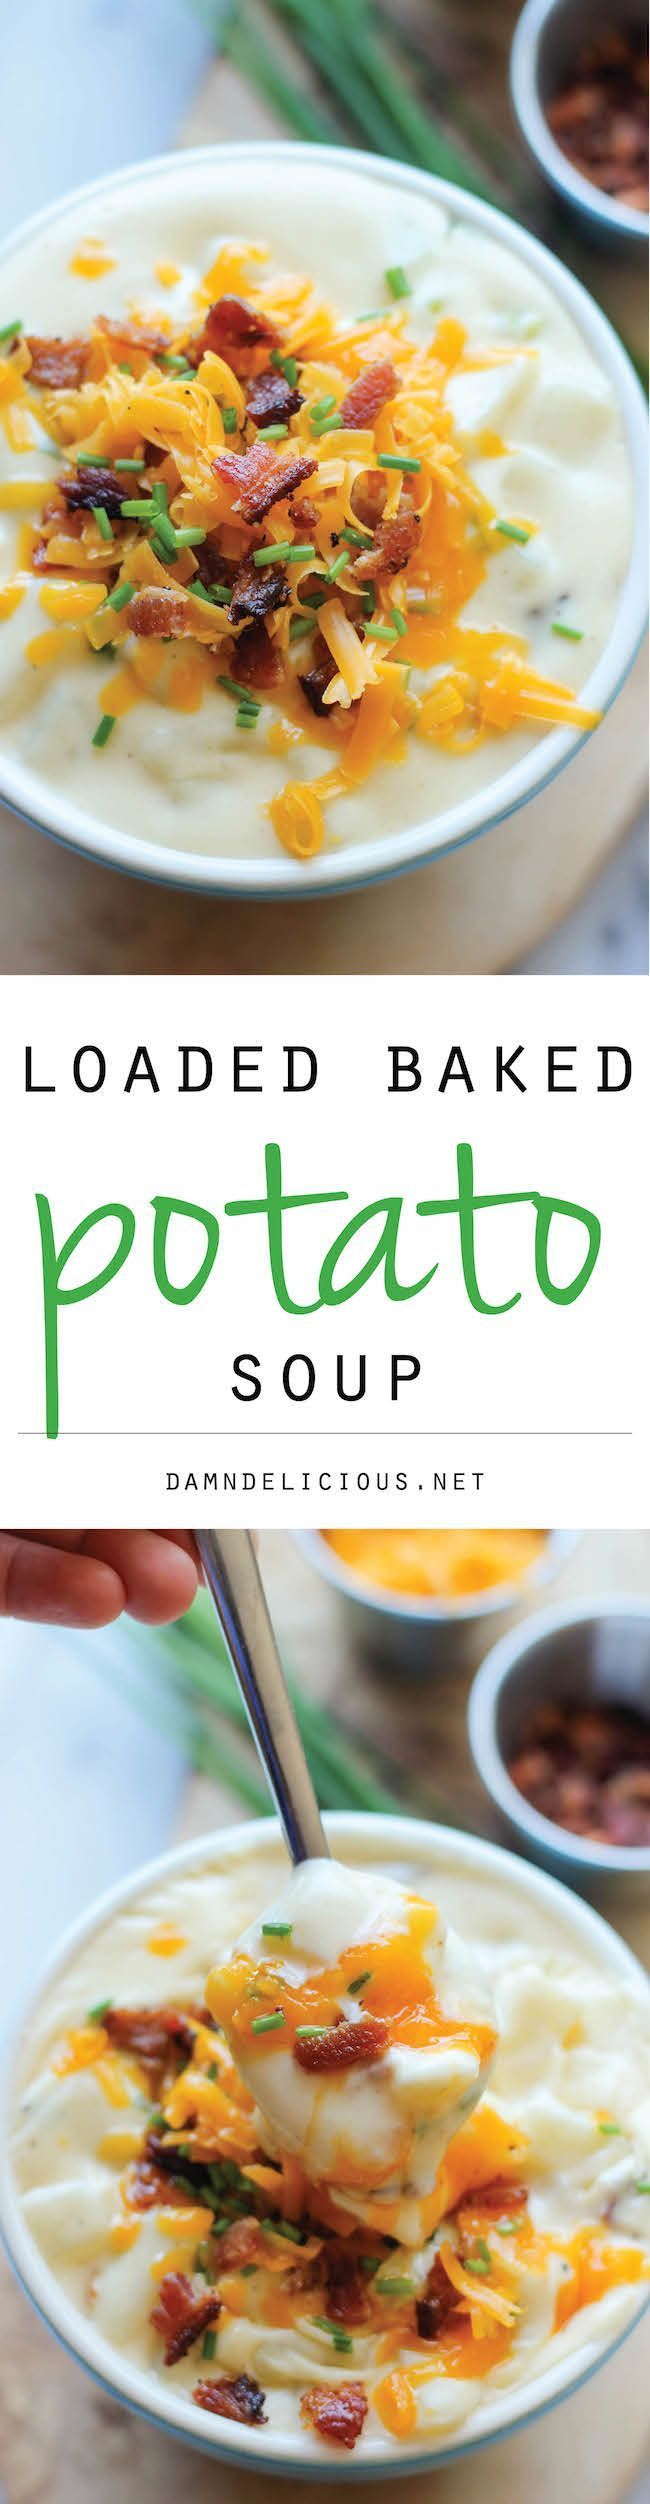 Loaded Baked Potato Soup - All the flavors of a loaded baked potato comes together in this comforting soup!